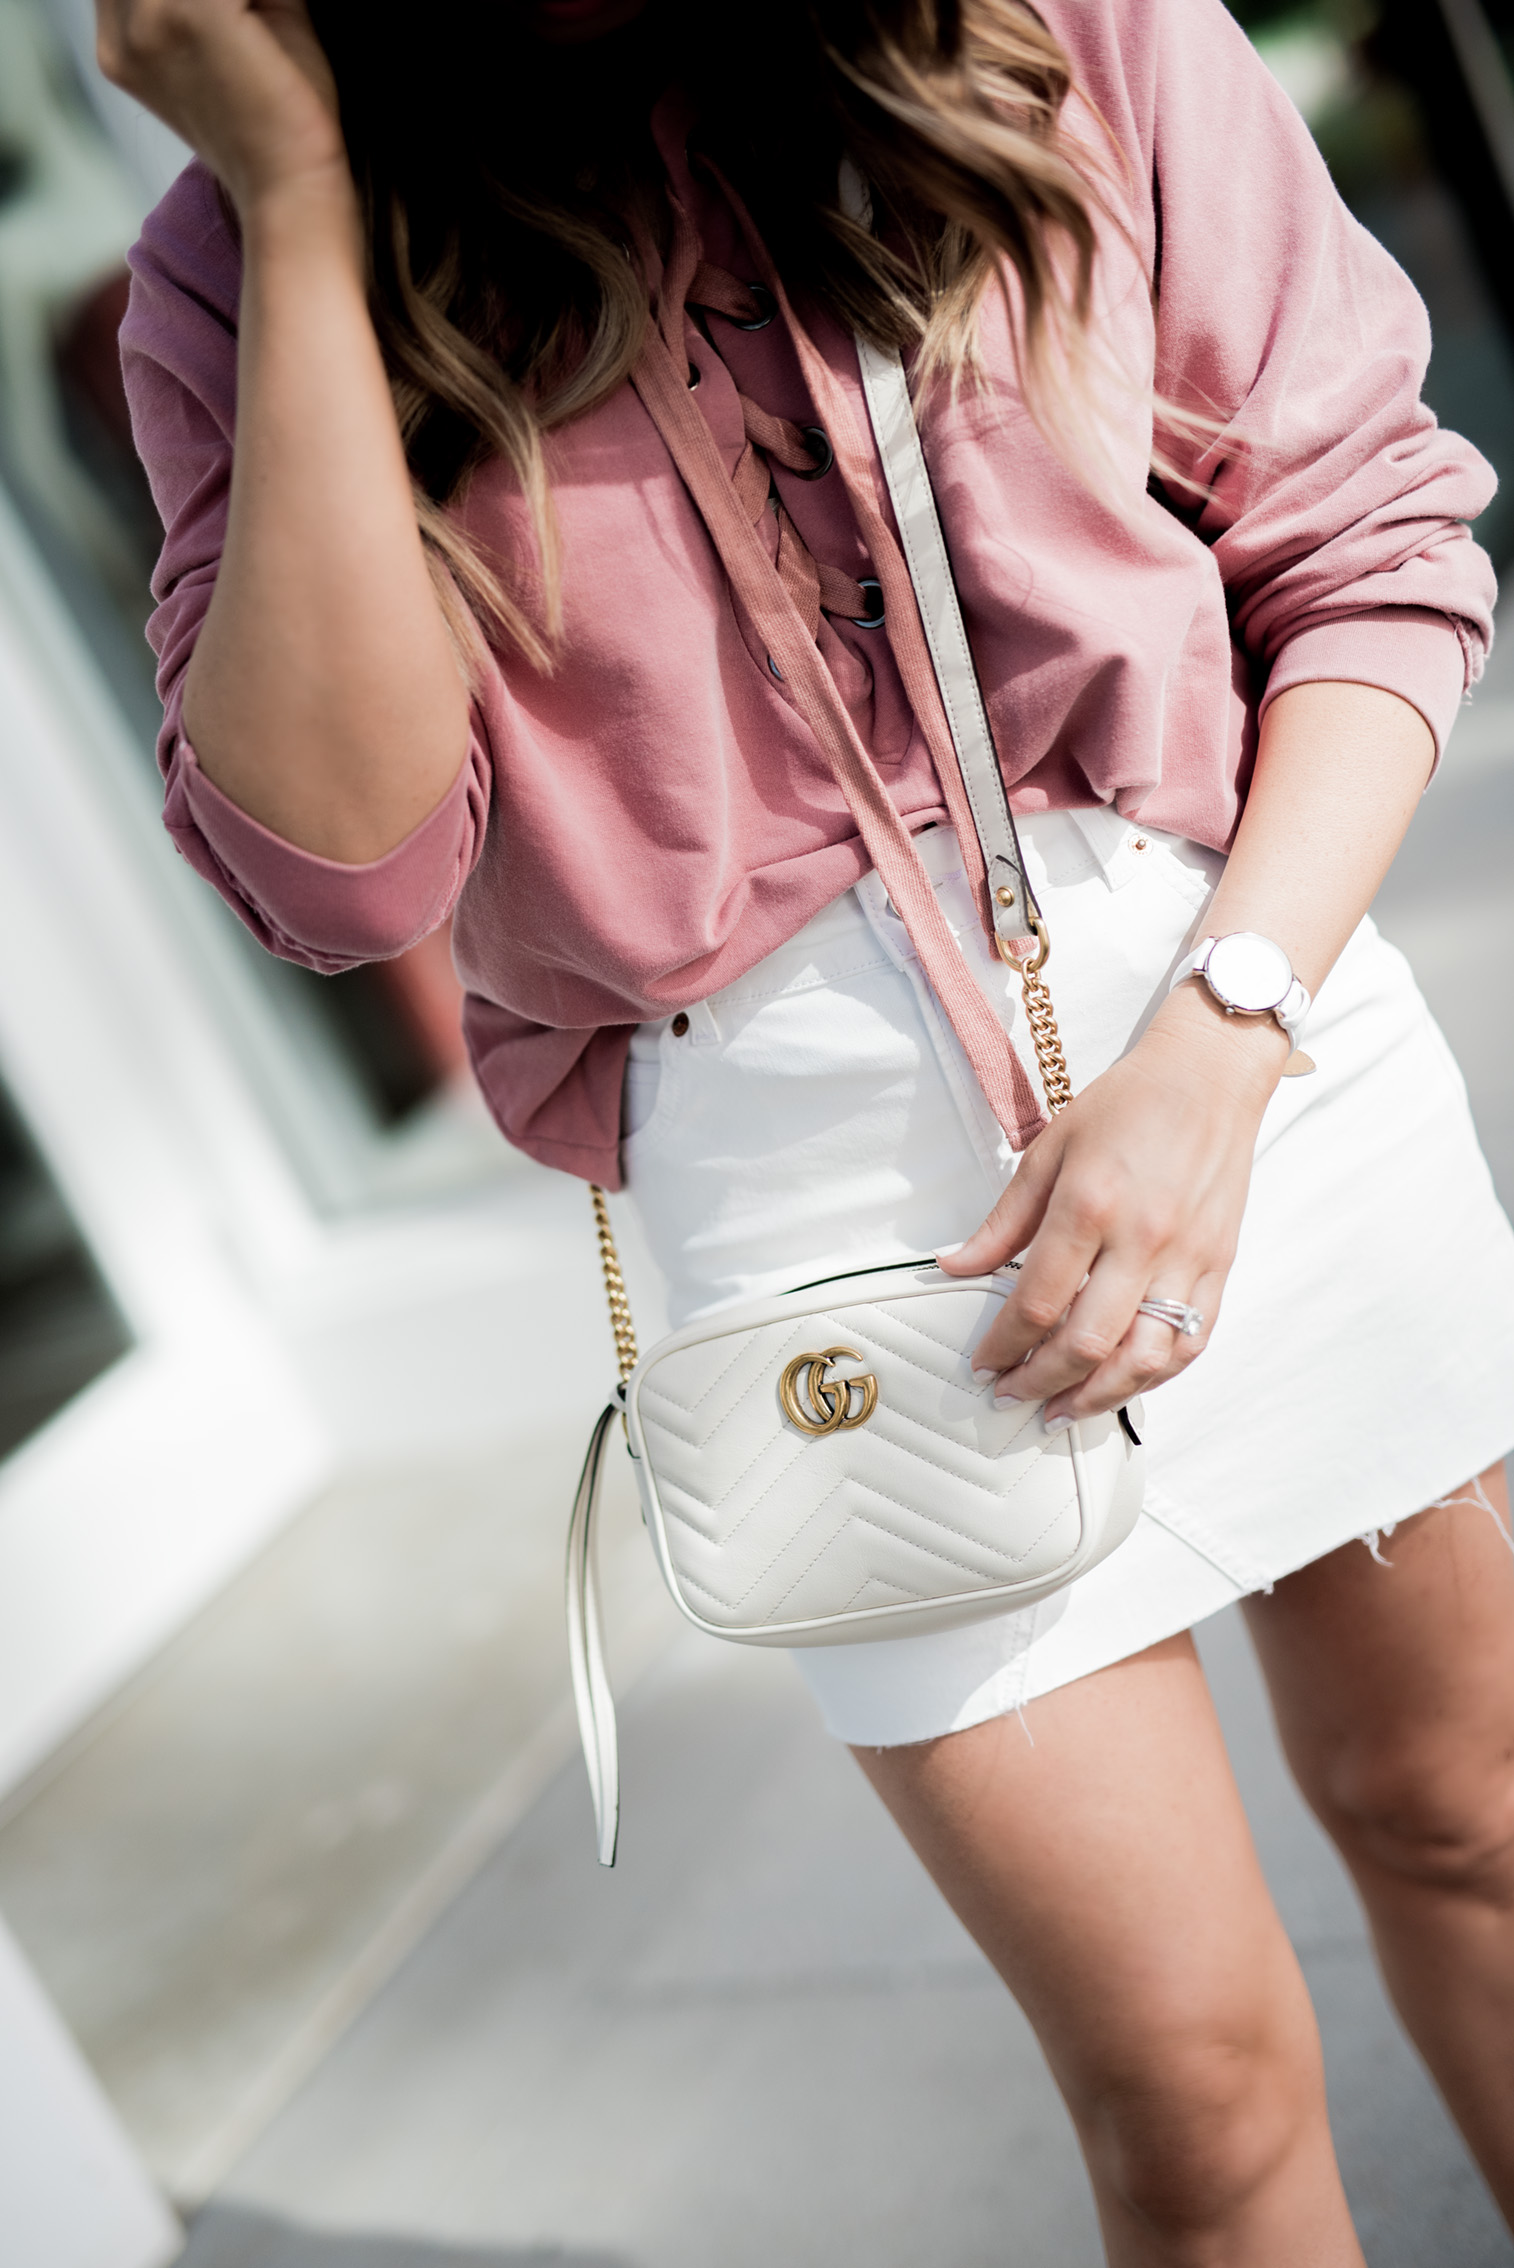 Tiffany Jais Houston fashion and lifestyle blogger | Currently trending- white accessories, white gucci marmot bag, white zala pumps, lace up top, casual outfit ideas, street style